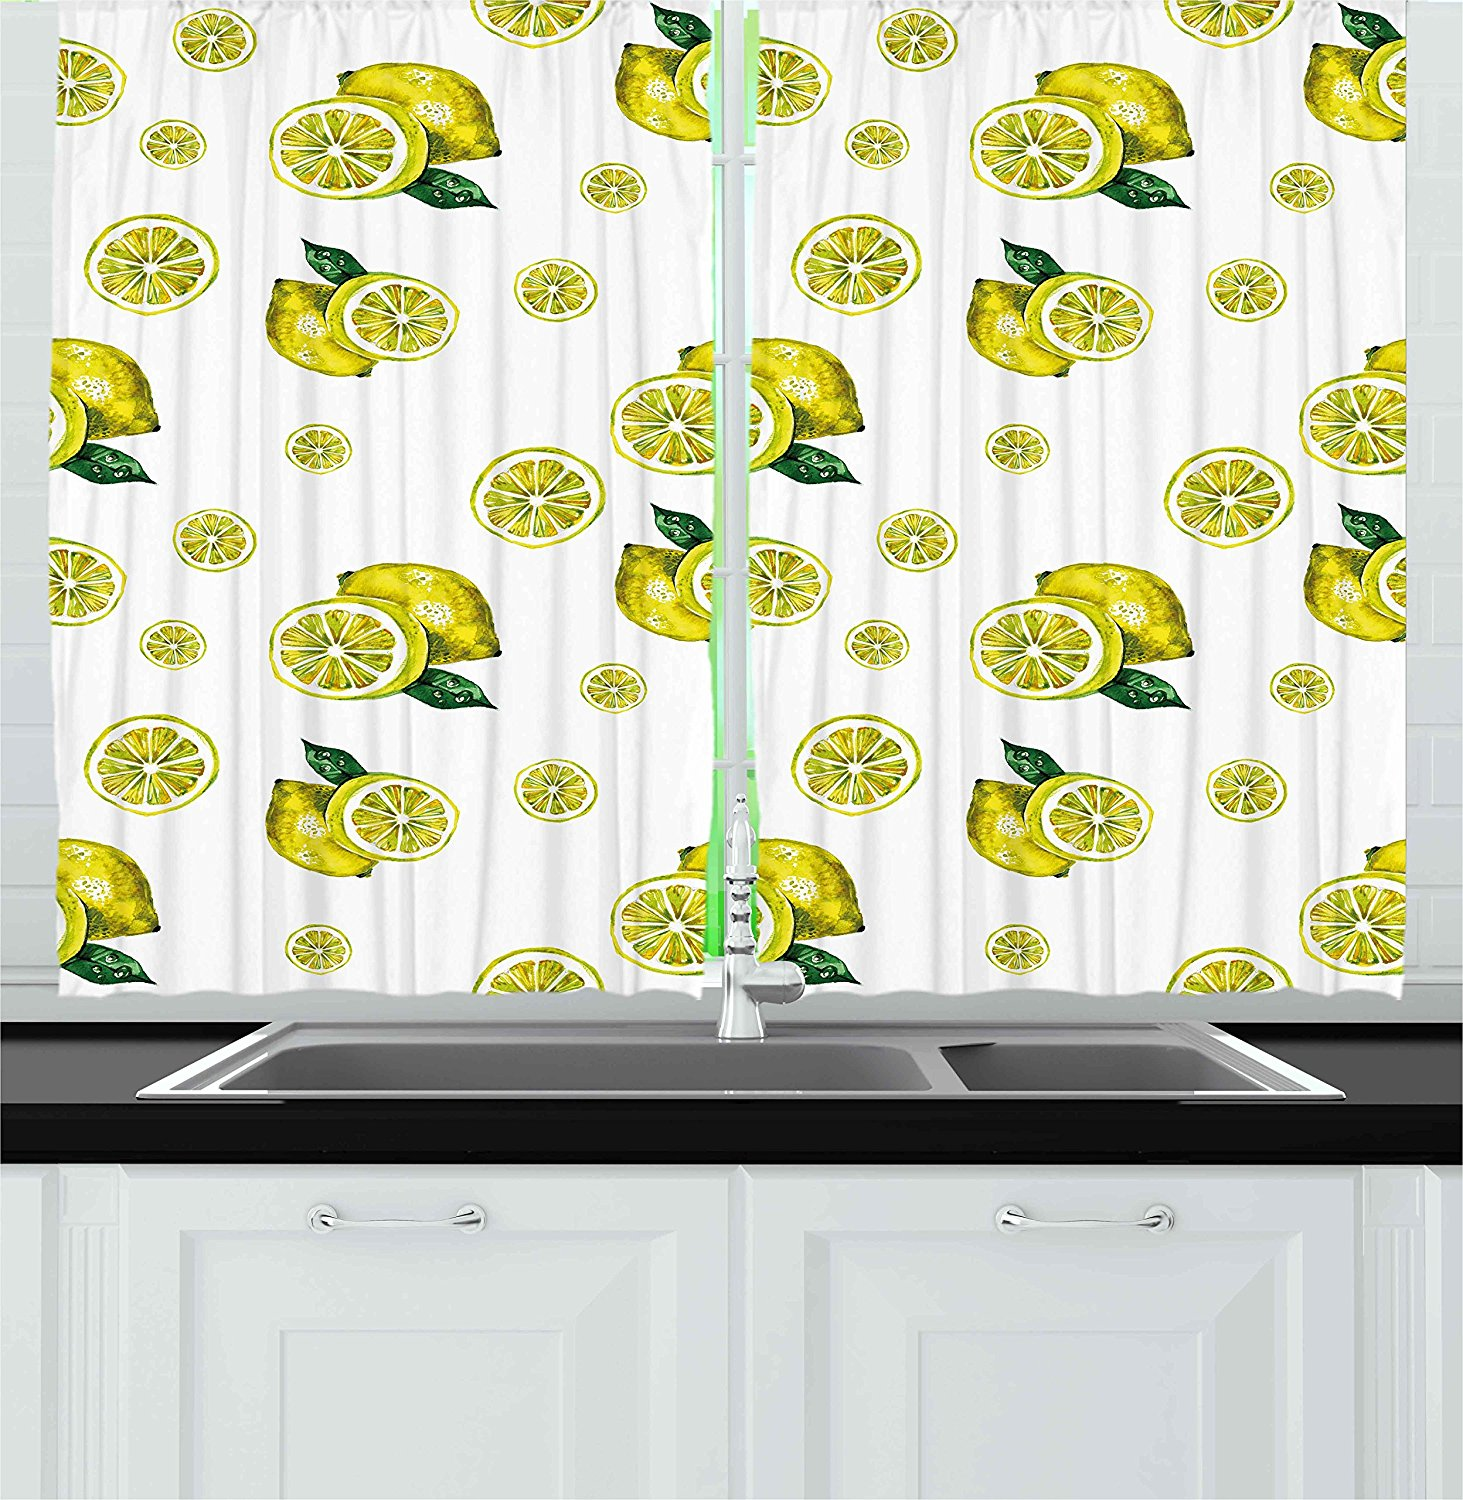 Modern Kitchen Curtains By Lemon Figures With Slices And Leaves Summer Season Fresh Fruit Watercolor Window Drapes 2 Panels Set For Kitchen By Ambesonne Walmart Com Walmart Com